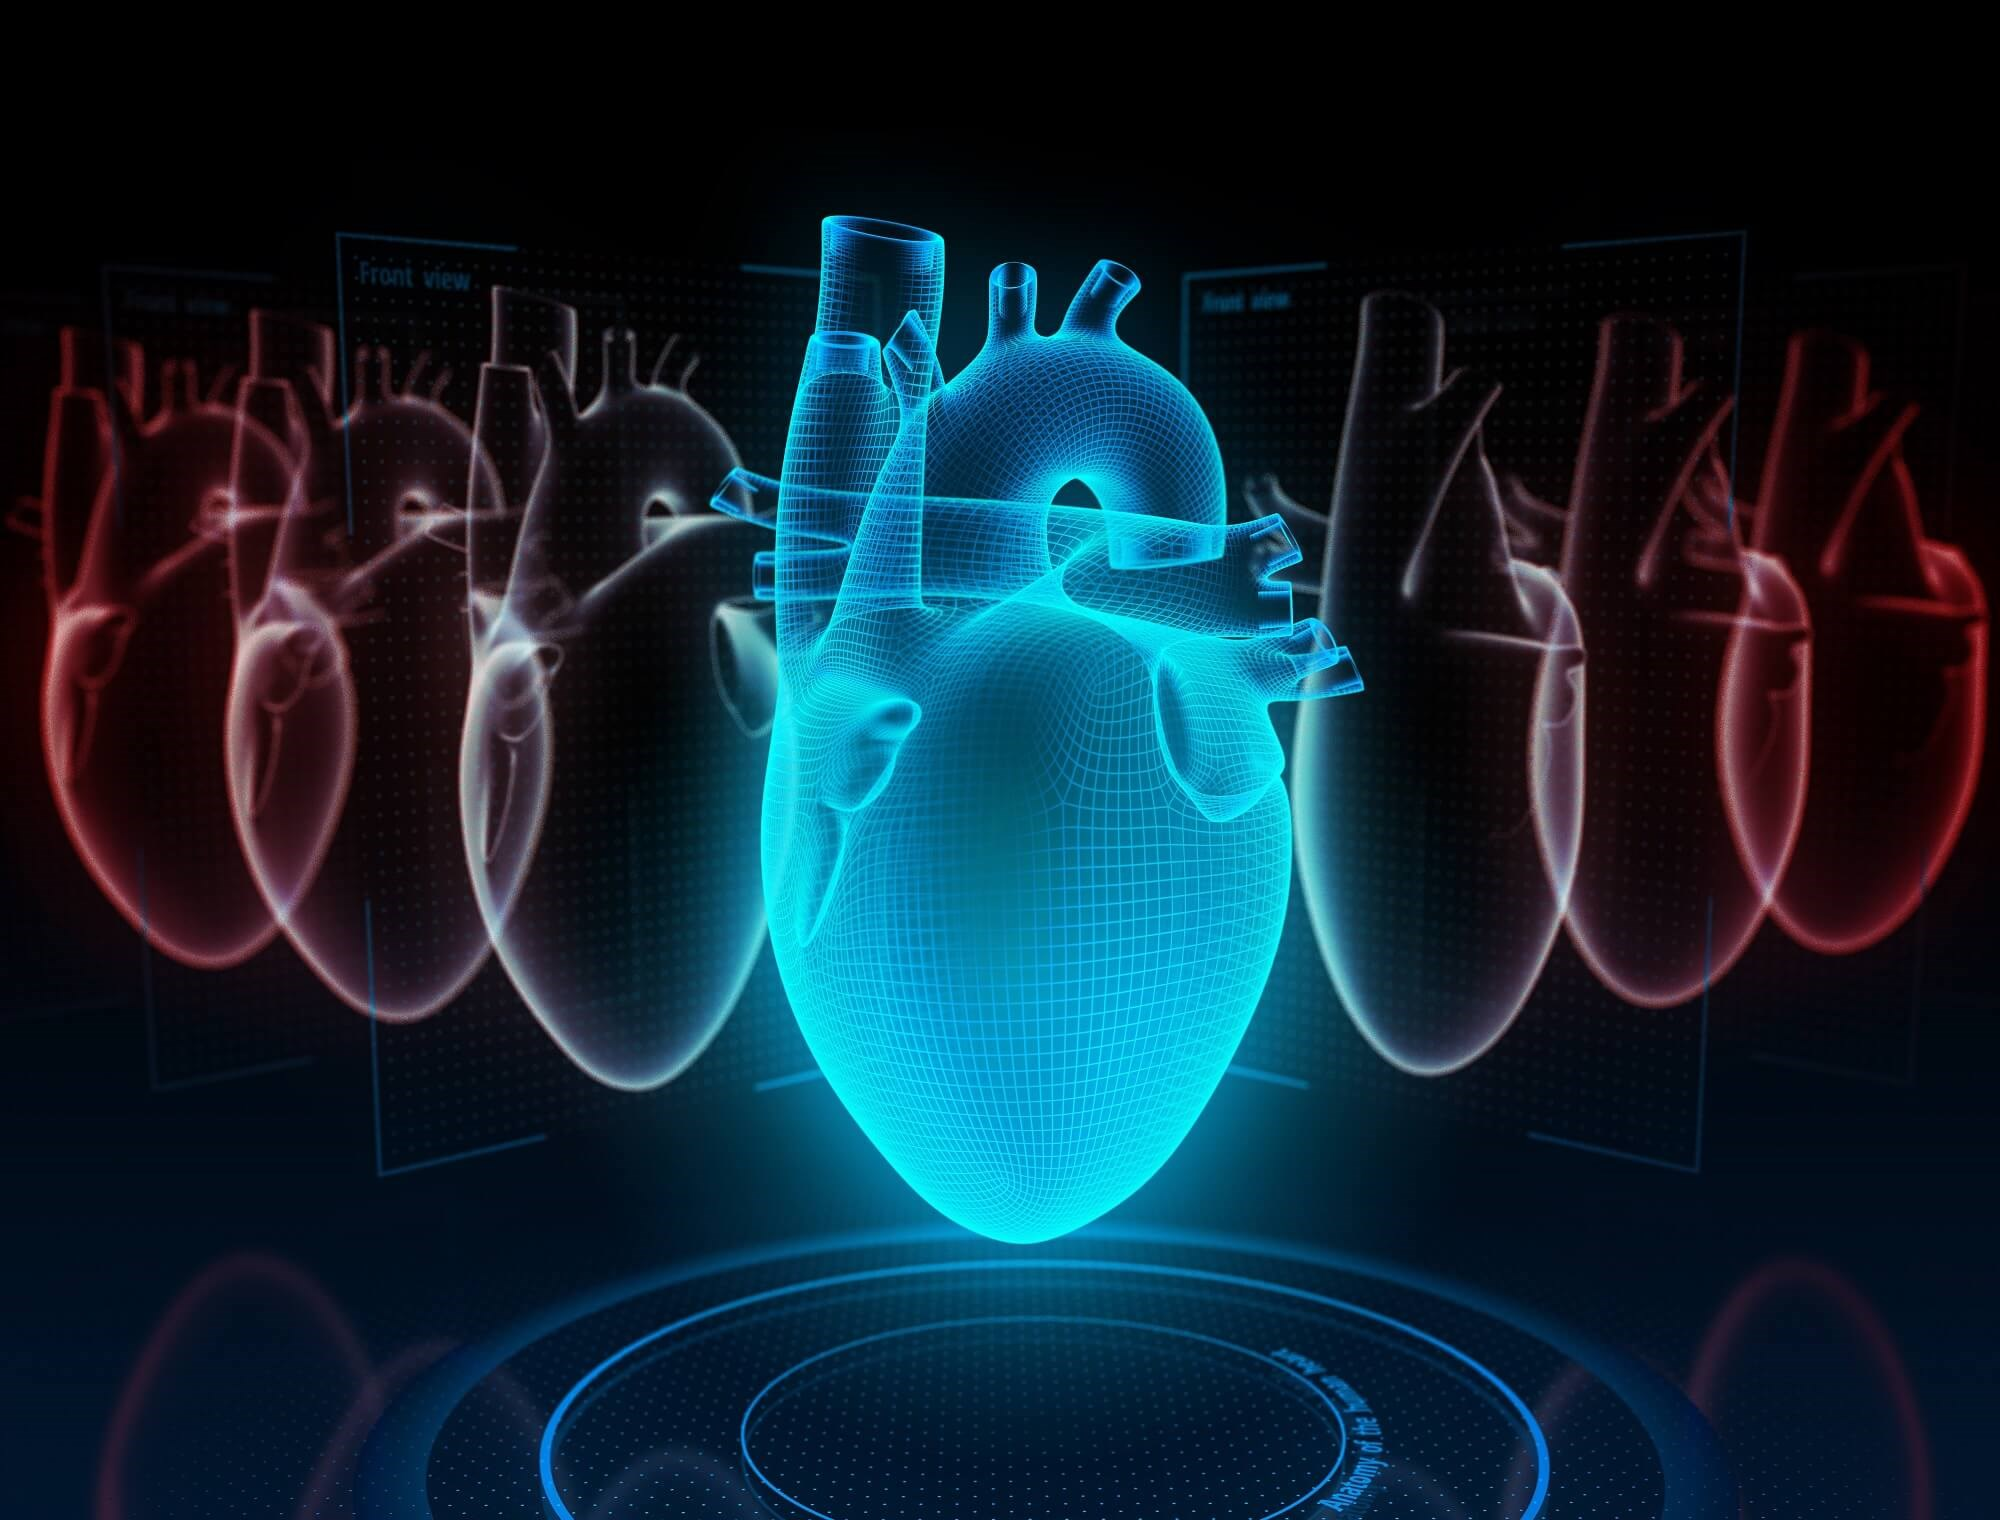 ADT users had a multivariable adjusted hazard ratio of 1.72 for heart failure compared to nonusers.